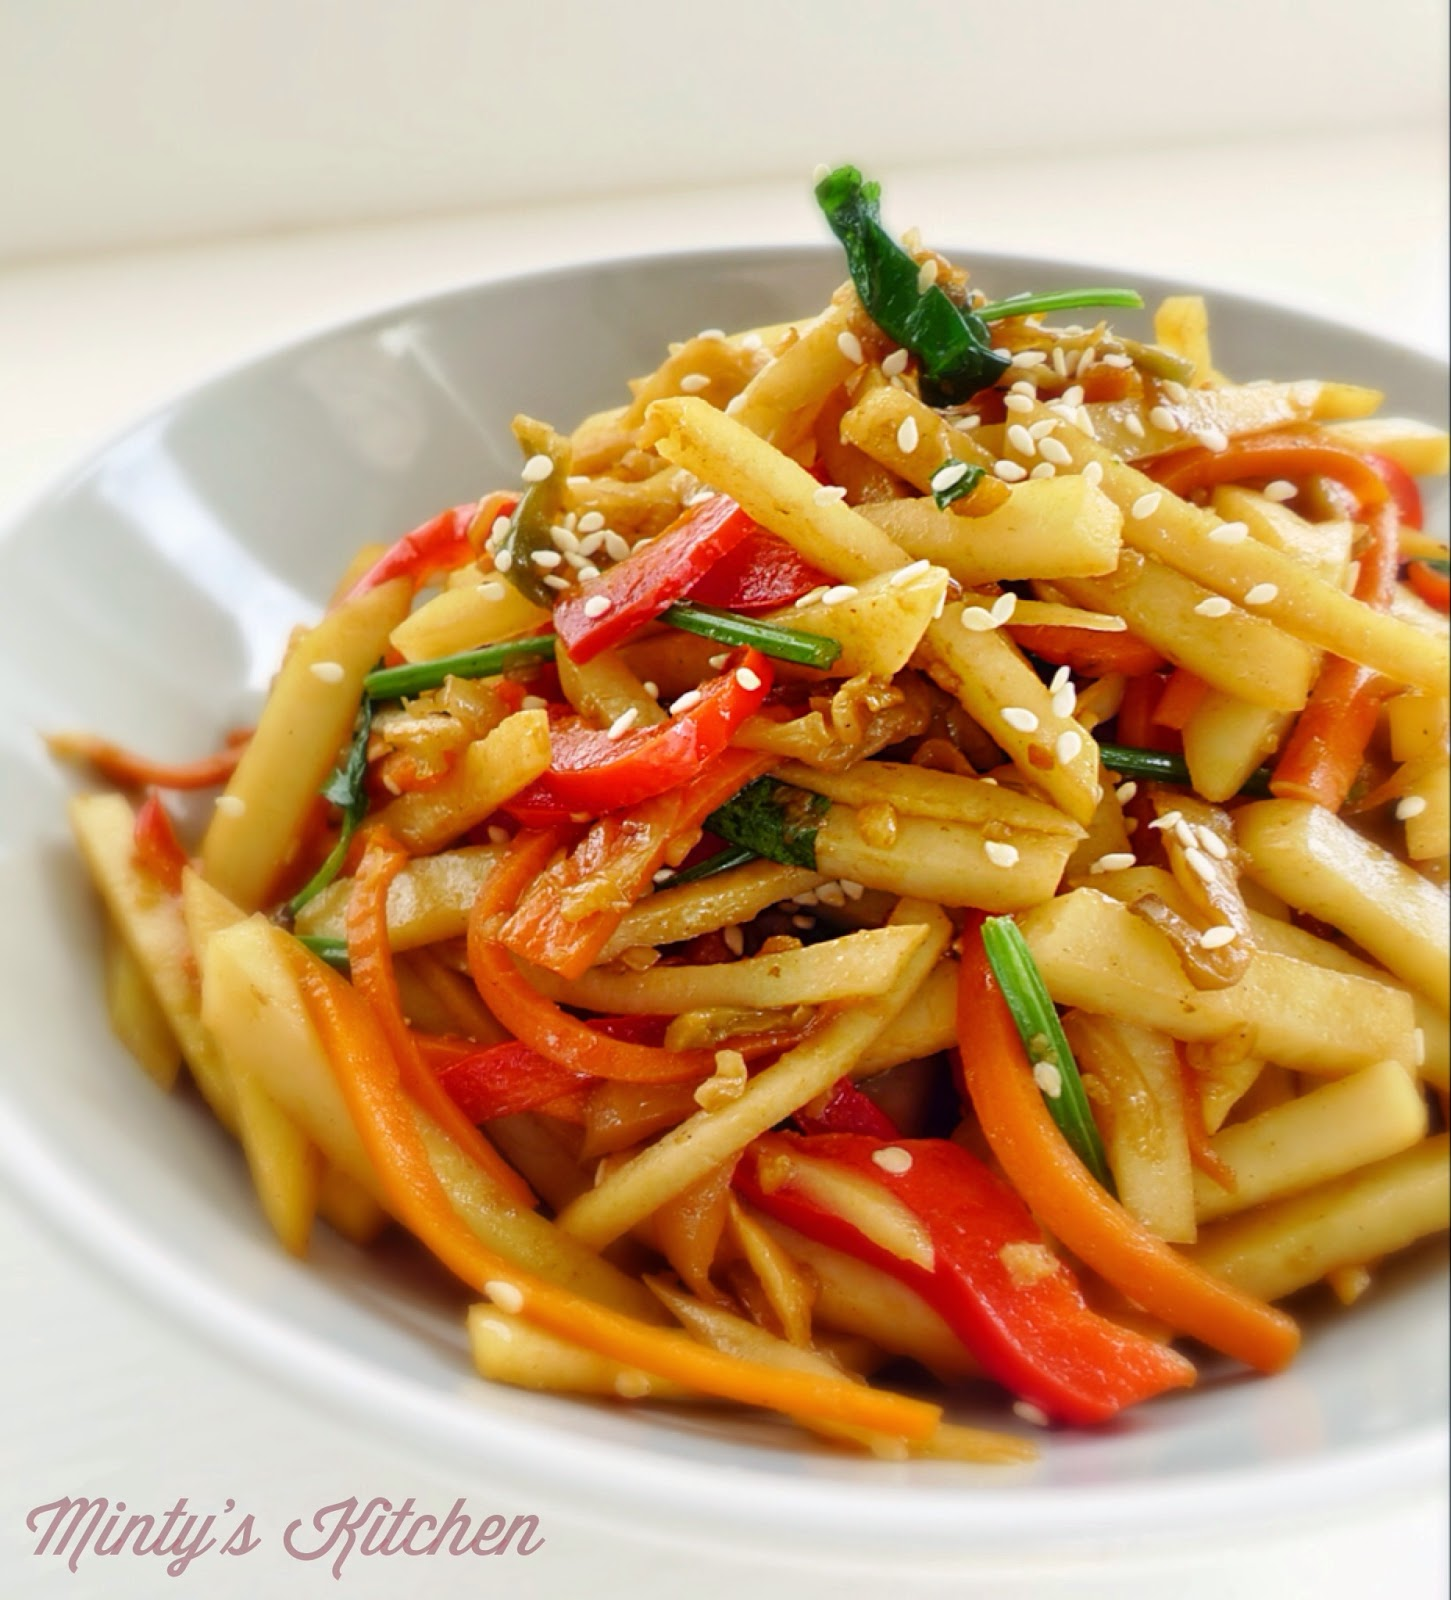 Sichuan Stir-fry Potato Strips ( 炒土豆丝)